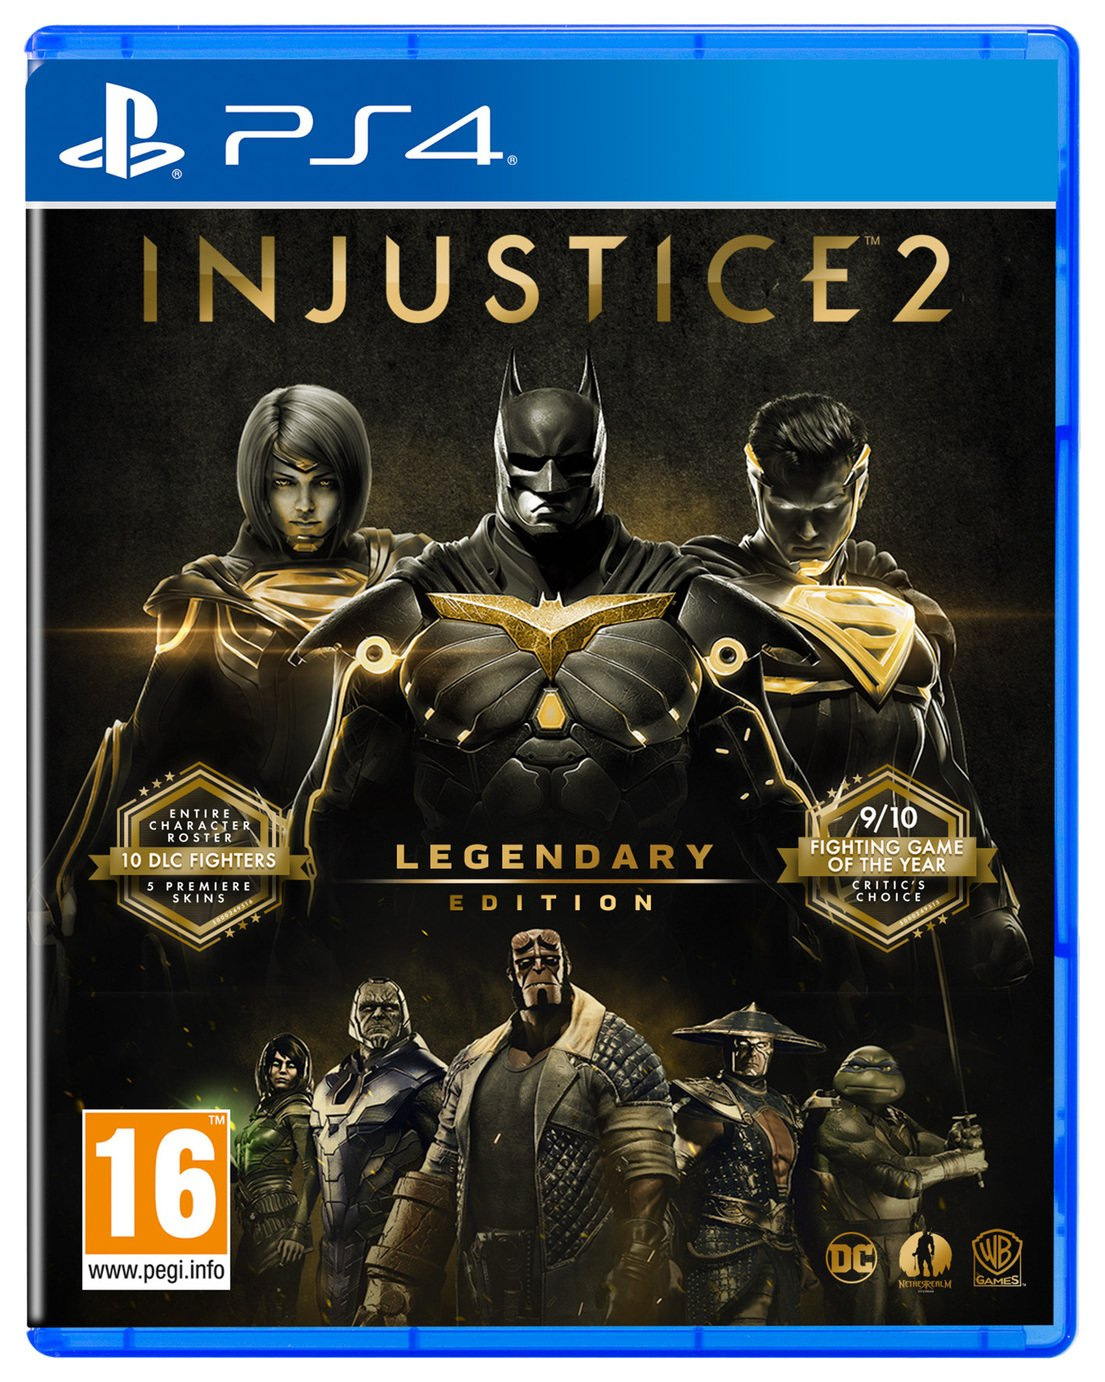 Injustice 2 Legendary Edition PS4 Game from Injustice